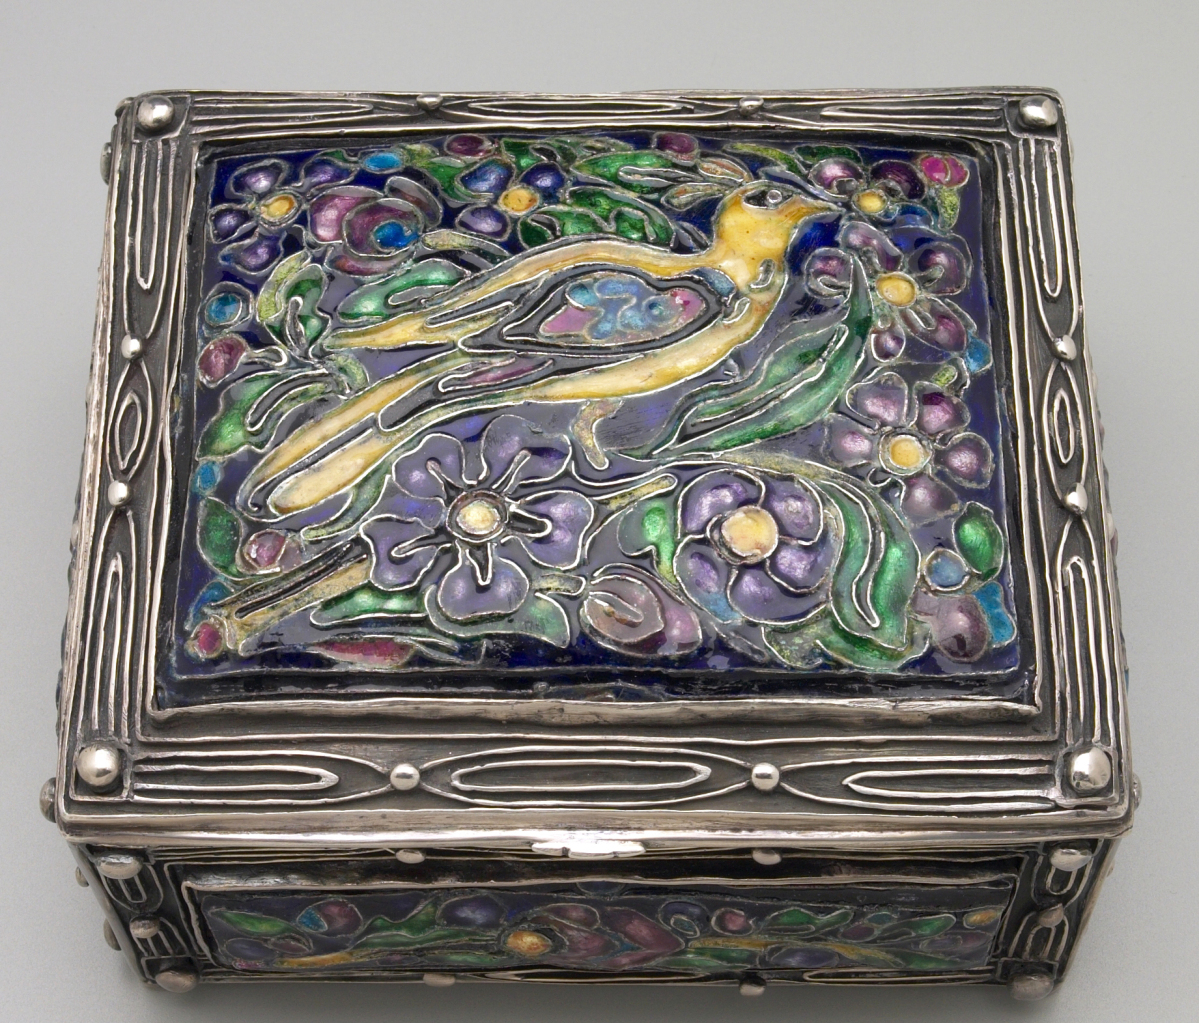 "An Arts and Crafts BoxBox by Elizabeth Copeland, 1907–16. Sterling silver with colored enamels. Mrs Paul Moore Fund.Following the show ""The Arts and Crafts Movement in America, 1876-1916"" at Princeton University Art Museum in 1972, Yale curators focused on building collections that responded to this change in taste at the turn of the Twentieth Century. Shunning the machine and the factory system to return to handcraft practice of the preindustrial era, rich traditions are found in art pottery and metalsmithing. My first venture in building this aspect of the collection after becoming head curator in 1978 was to purchase this enameled silver box by Elizabeth Copeland from the firm of Lillian Nassau. Copeland worked in Boston. Her enamels evoke medieval prototypes and are consciously primitivistic. This stellar example of her work has a large enameled panel on the top and smaller ones on all four sides."